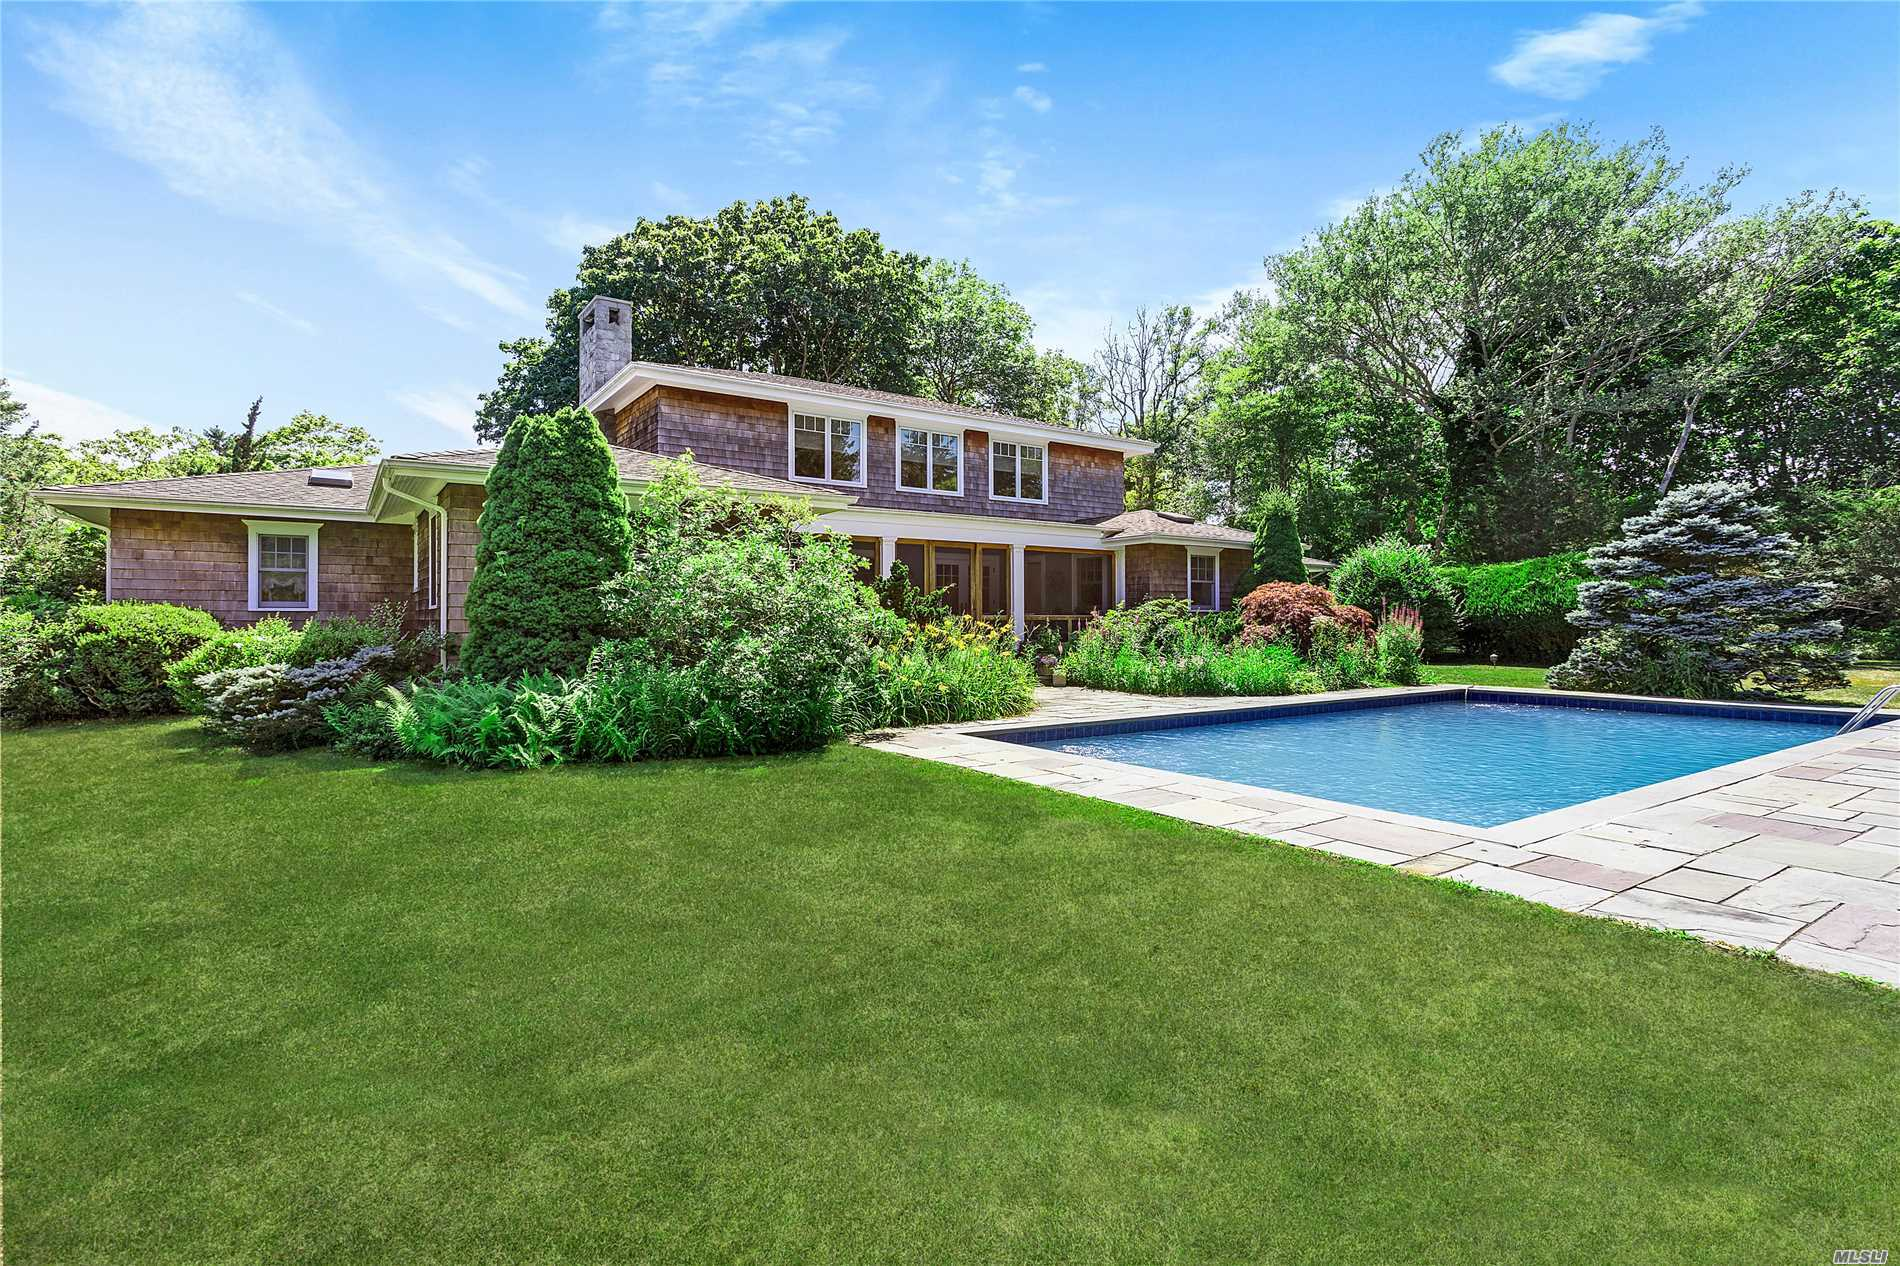 Photo of home for sale at 58 Quogue St, Quogue NY